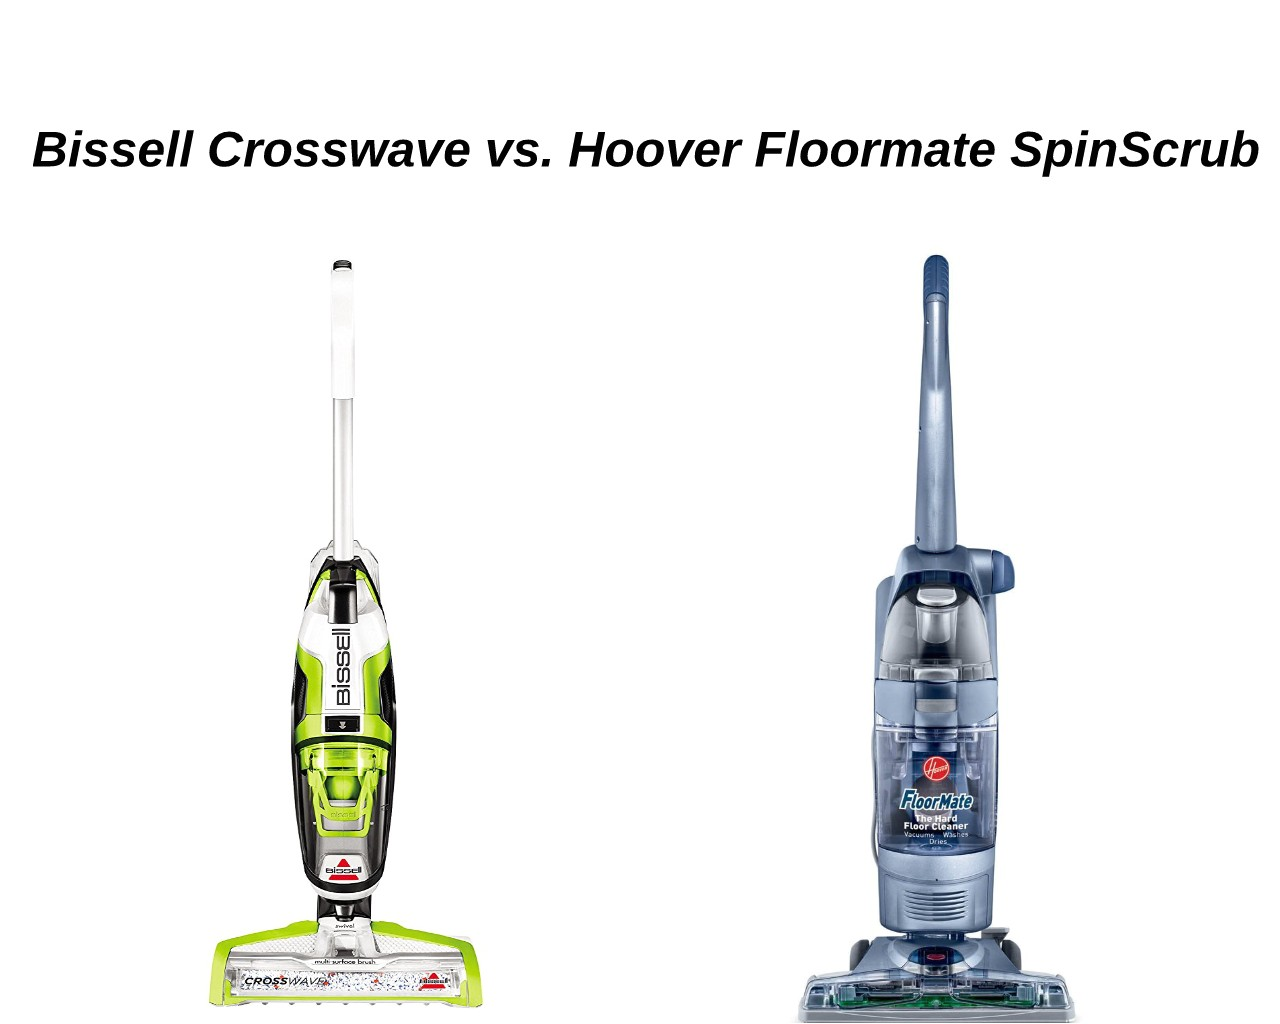 while the bissell crosswave multi surface cleaner consists of microfiber nylon brush rolls the hoover floormate consists of 6 brushes which form the